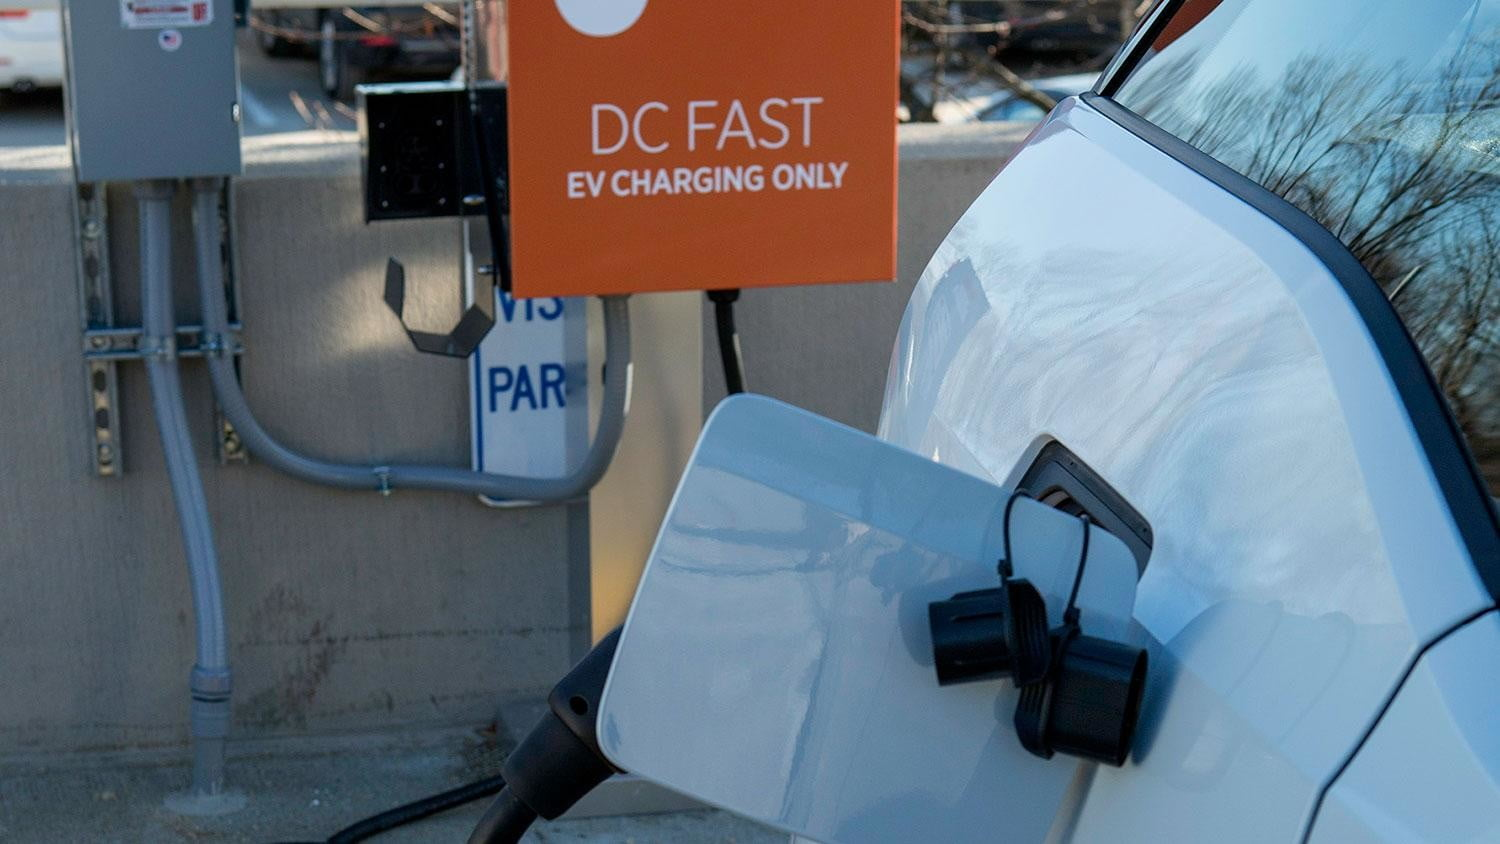 bmw vw and chargepoint create express charging corridors dc fast charge 127